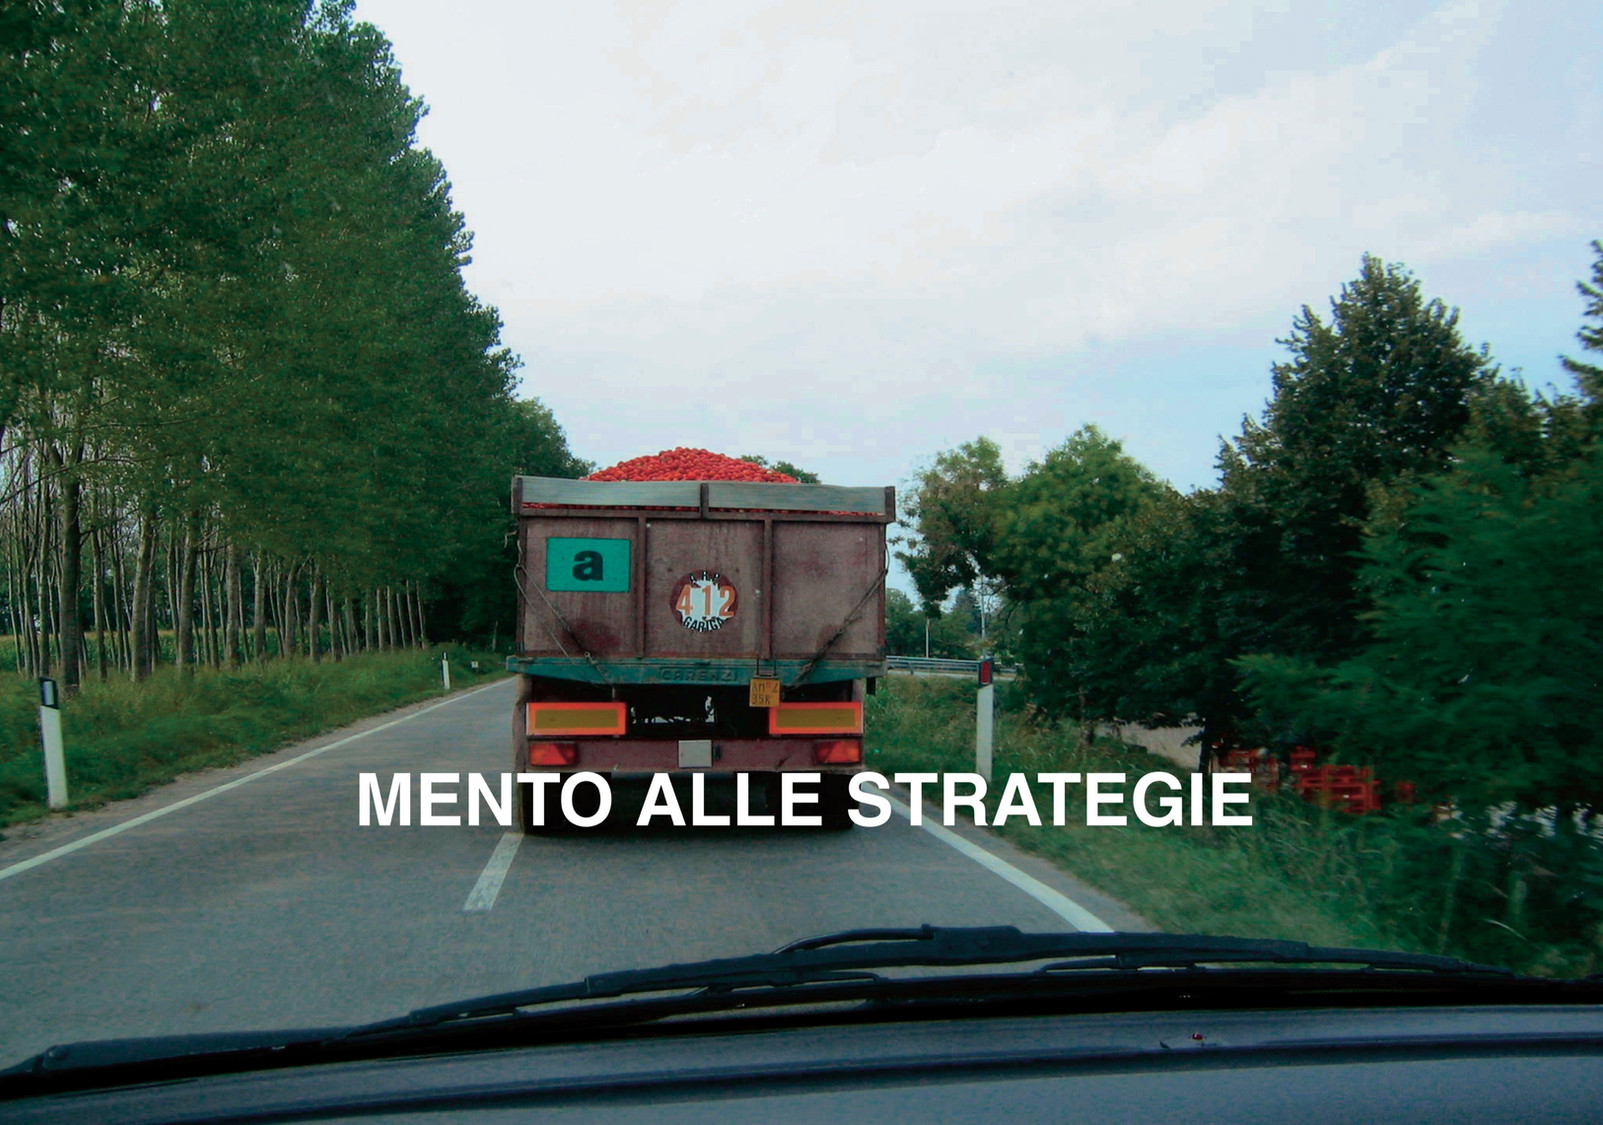 mento alle strategie